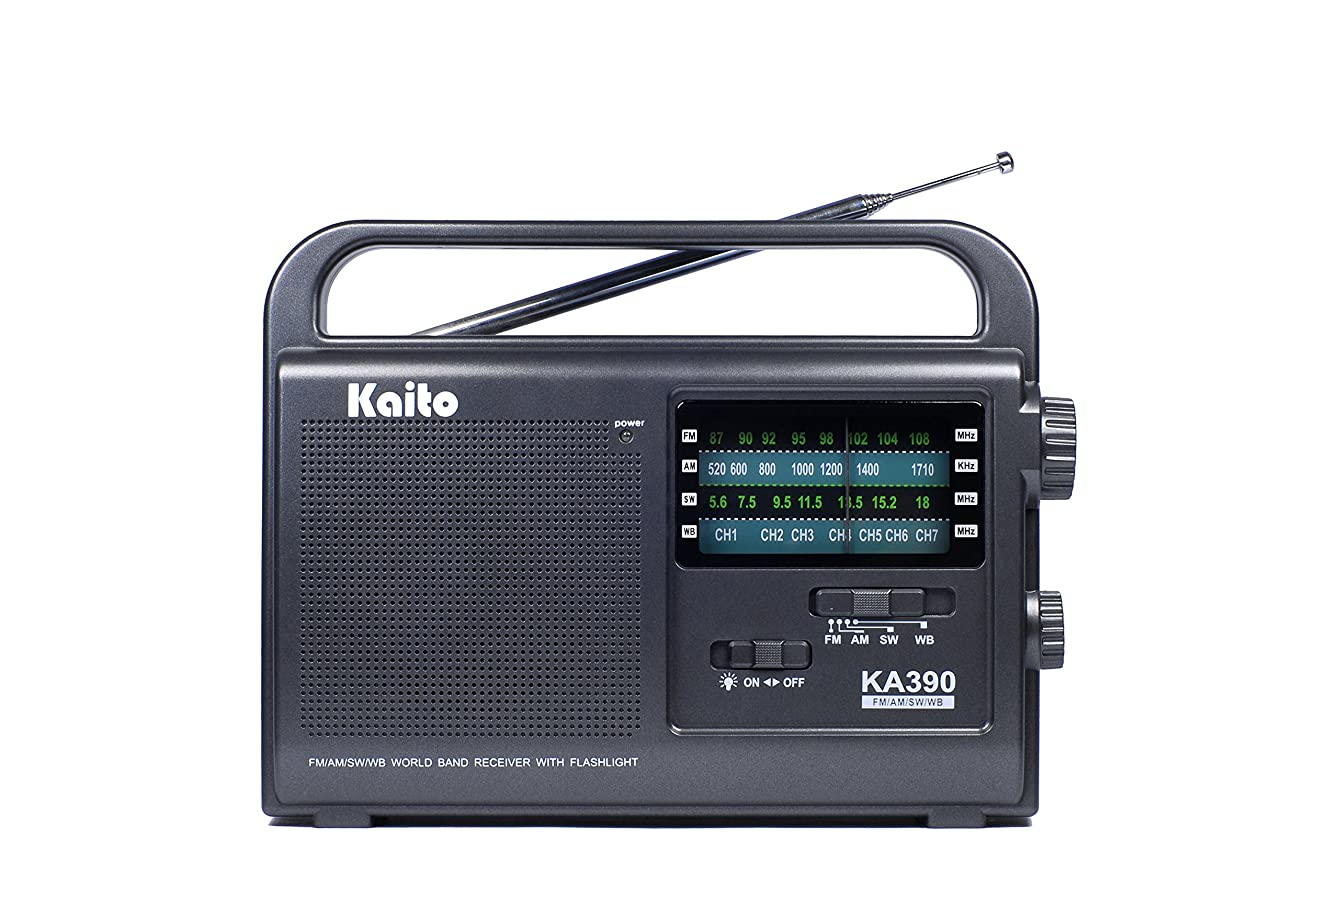 受け入れホバー顕現Kaito KA390 Portable AM/FM Shortwave NOAA Weather Radio with LED Flashlight, Color Black 141[並行輸入]